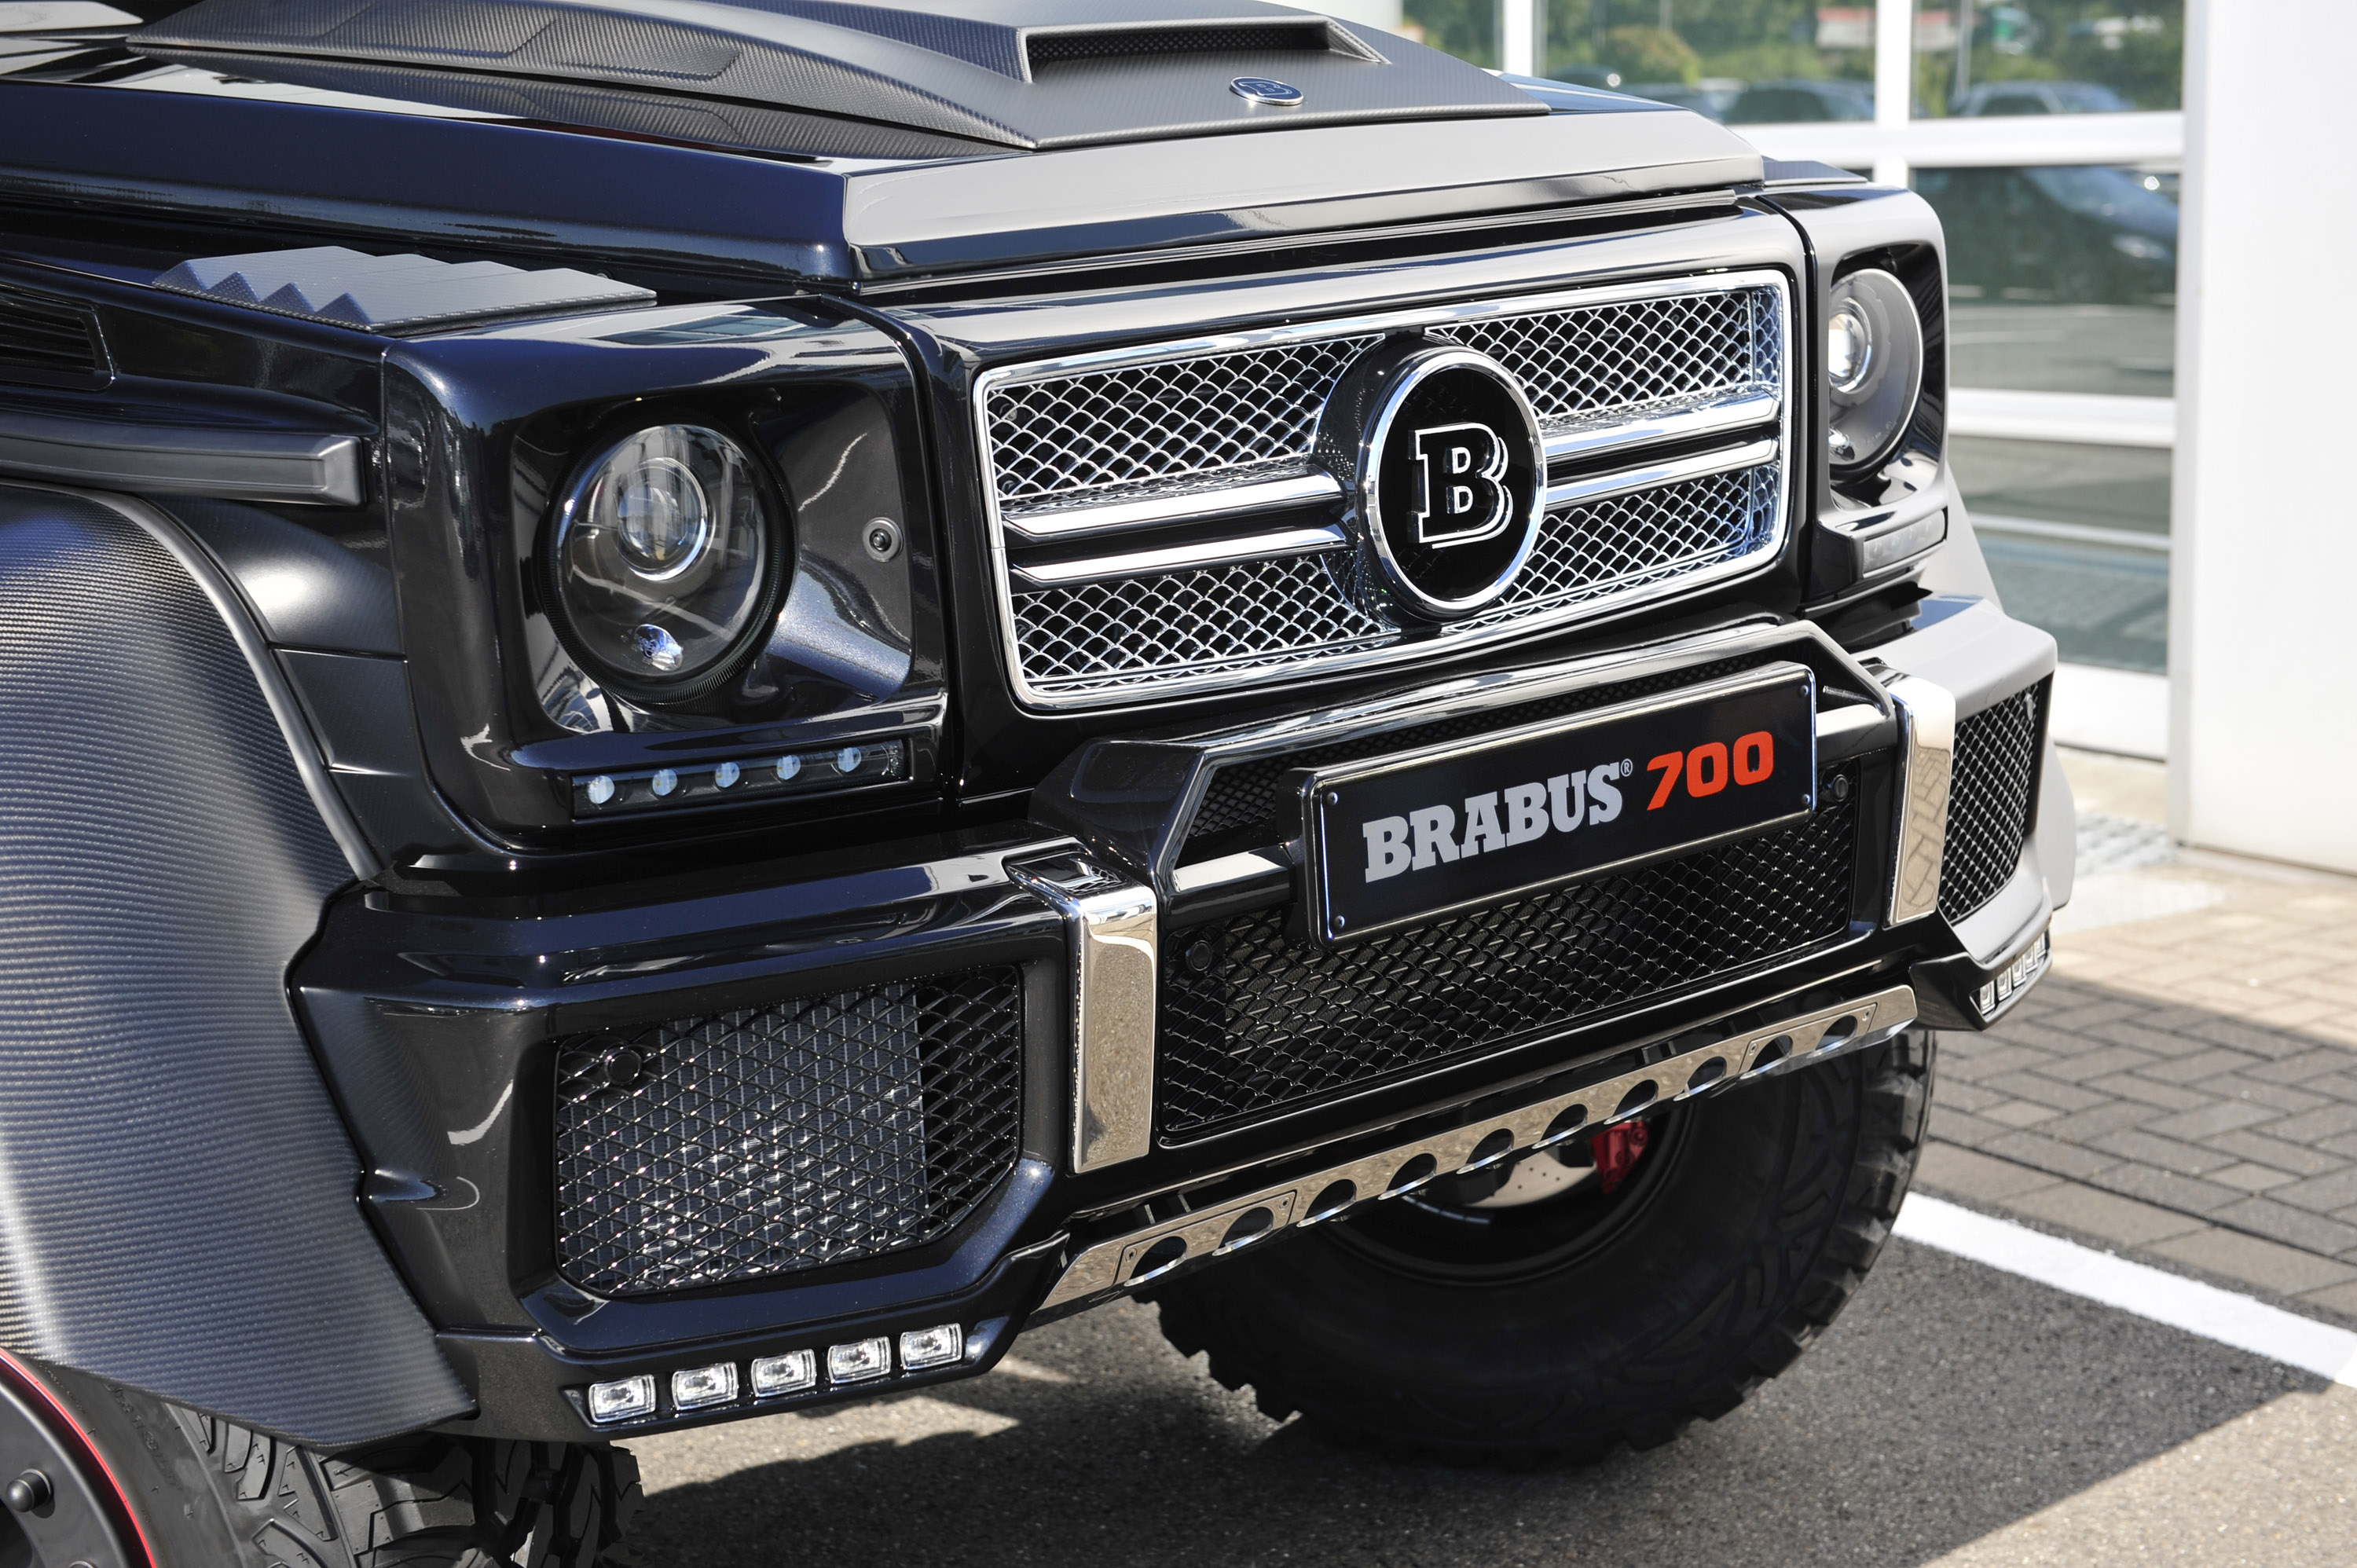 Brabus b63s mercedes benz g class 6x6 picture 89932 for Mercedes benz g wagon 6x6 for sale